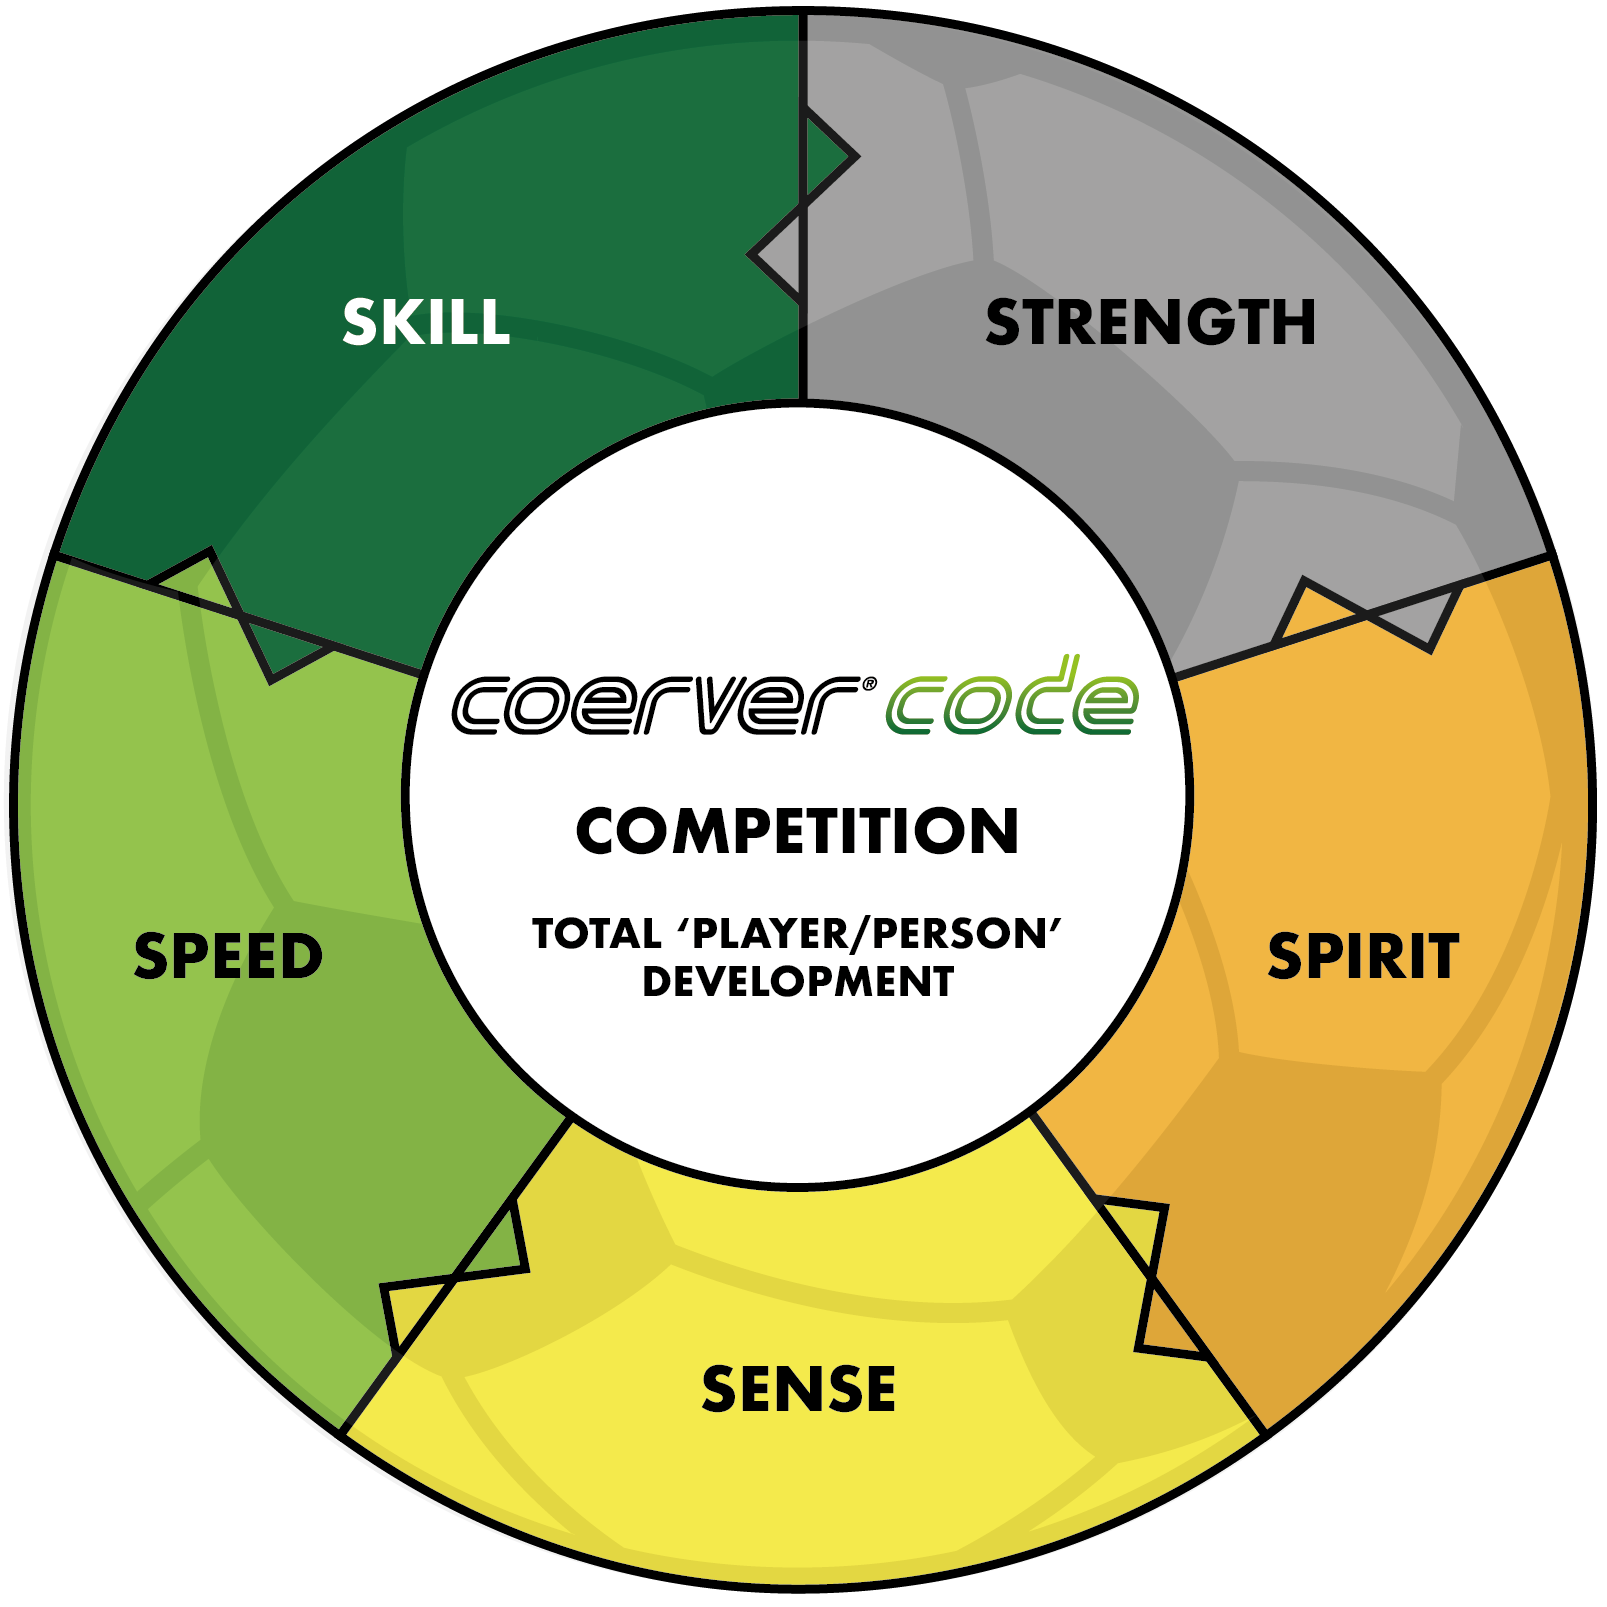 Coerver Code Graphic